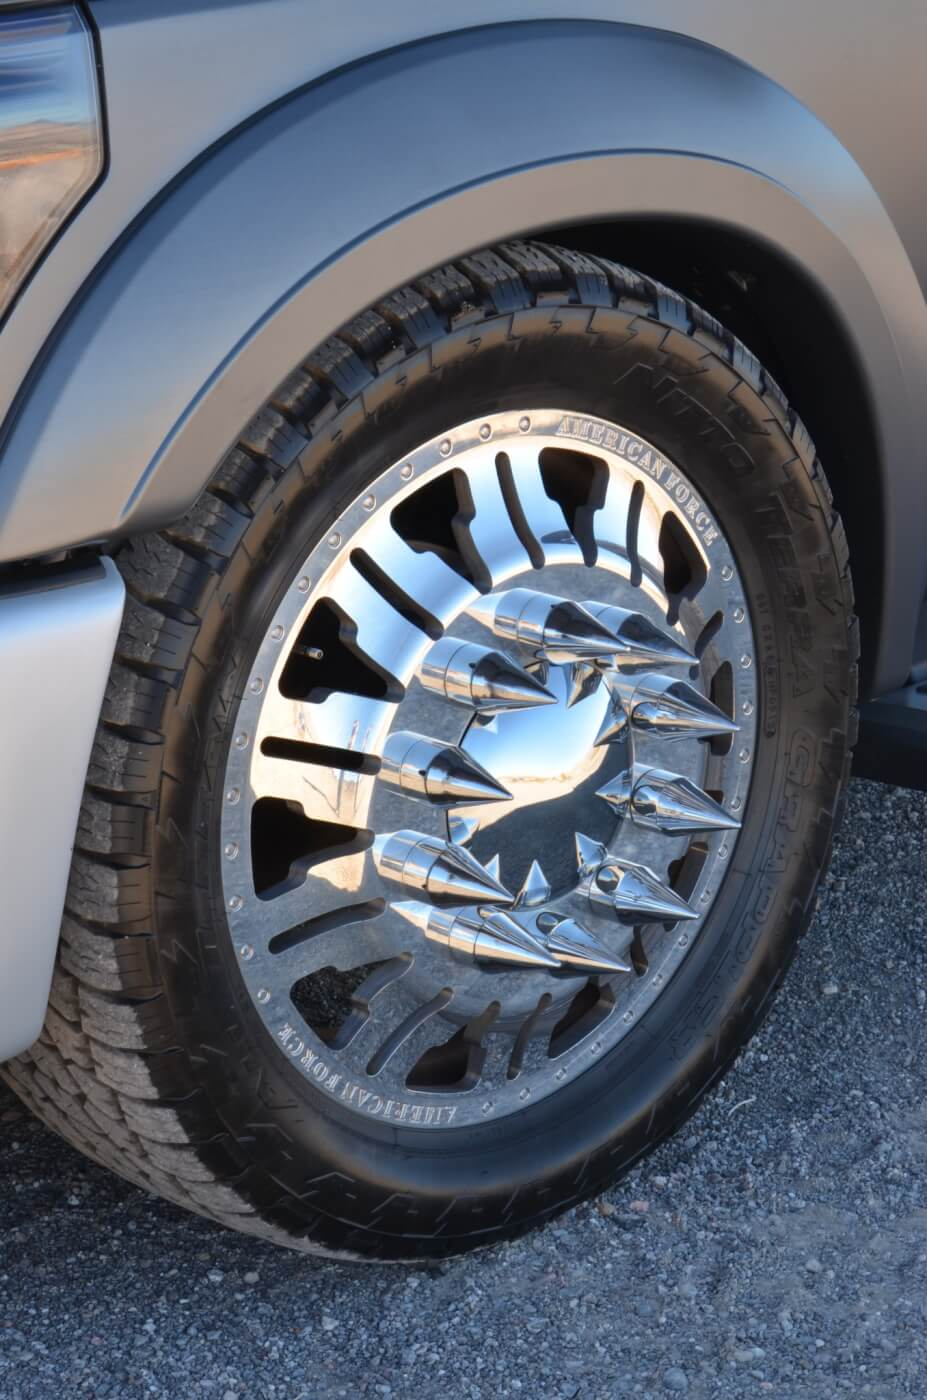 The lug nut spikes are a perfect touch adding to the Mini-Semi theme.